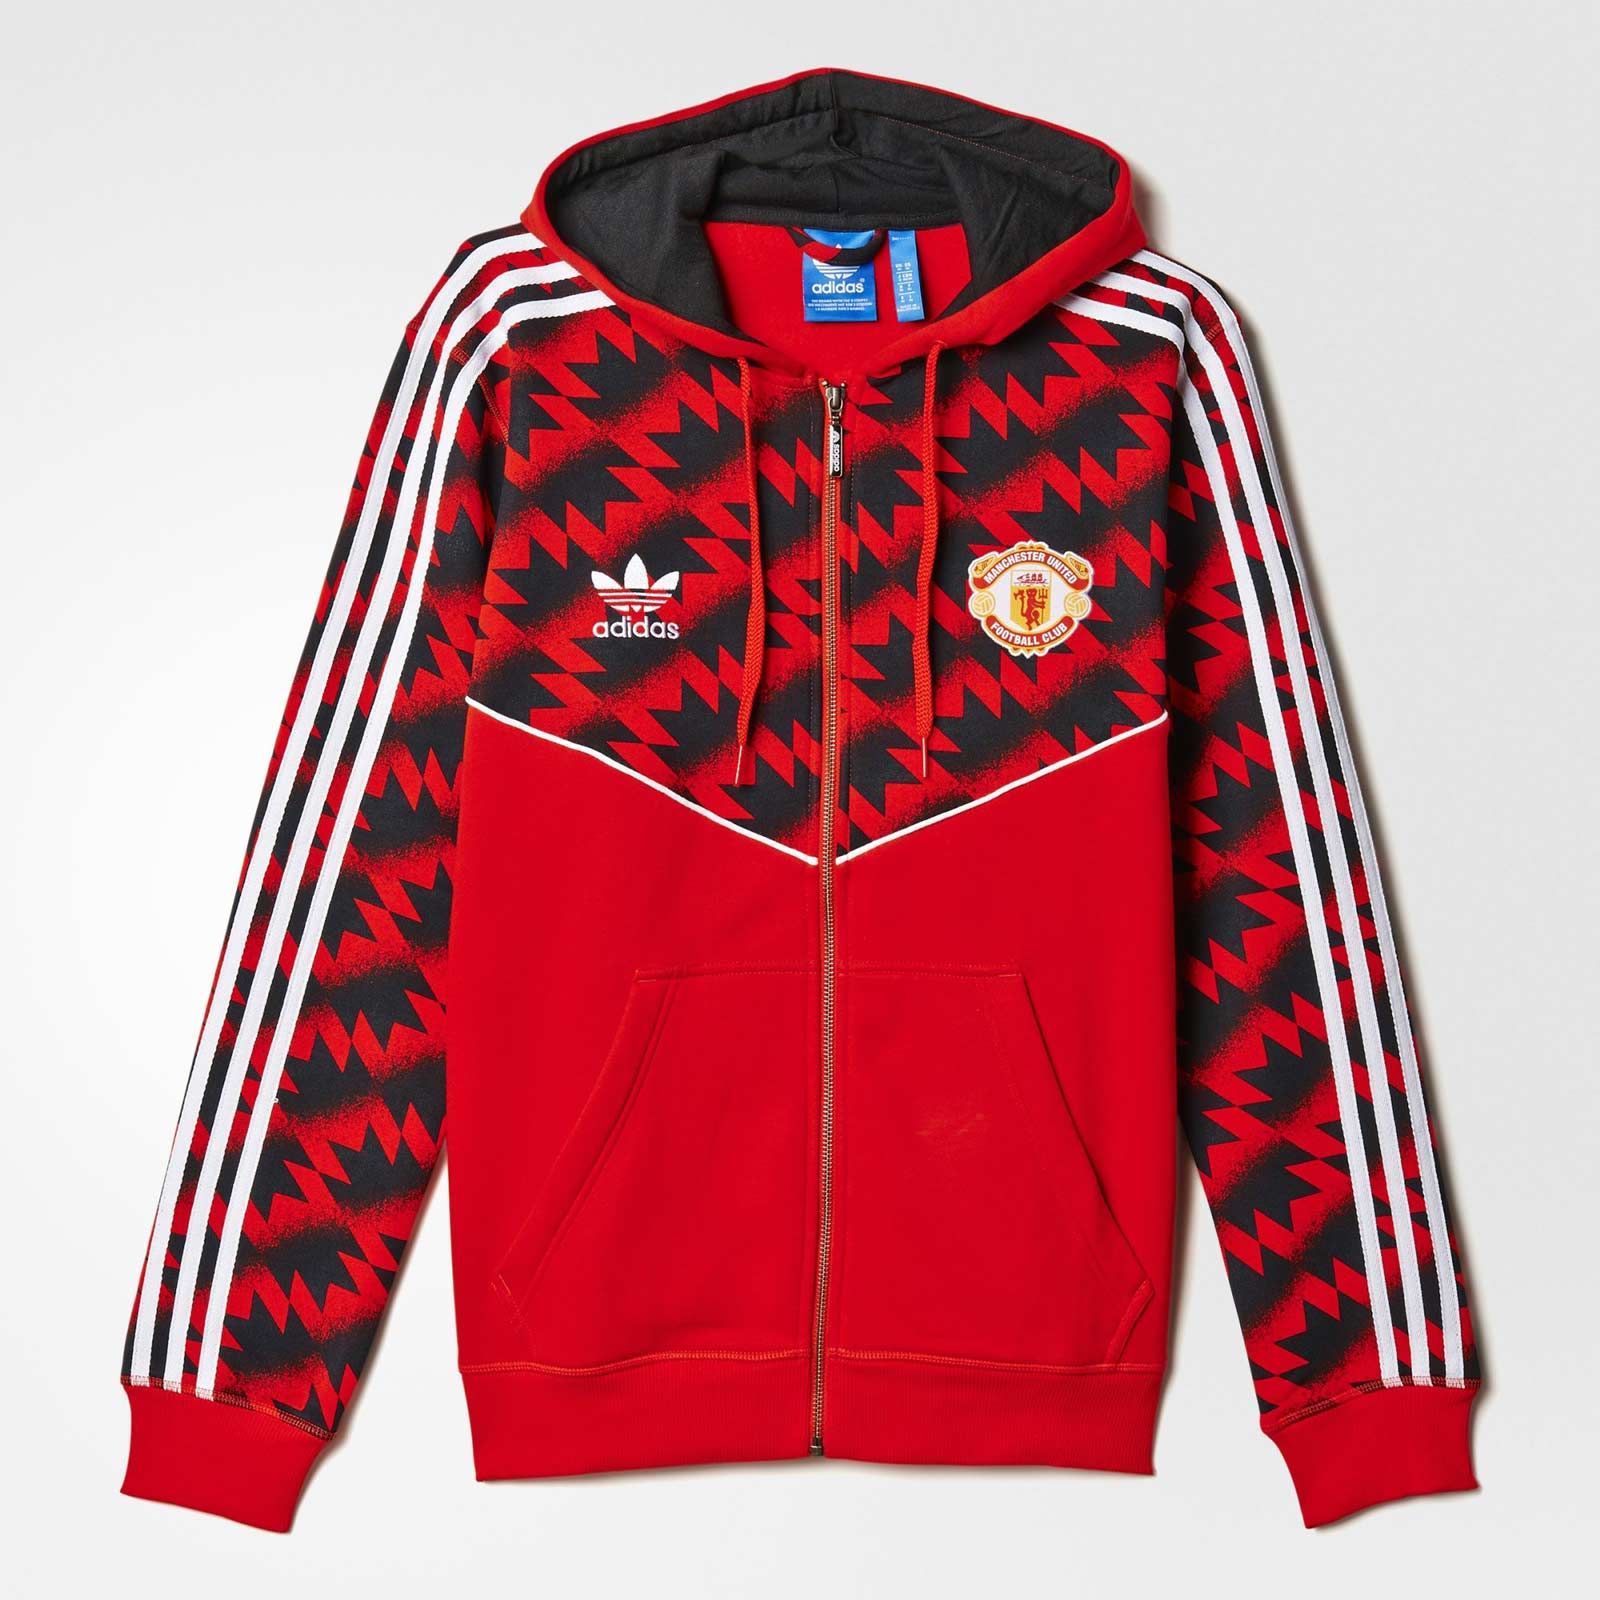 bbe6ebf69 New Adidas Originals x Manchester United Collection Revealed - Footy  Headlines